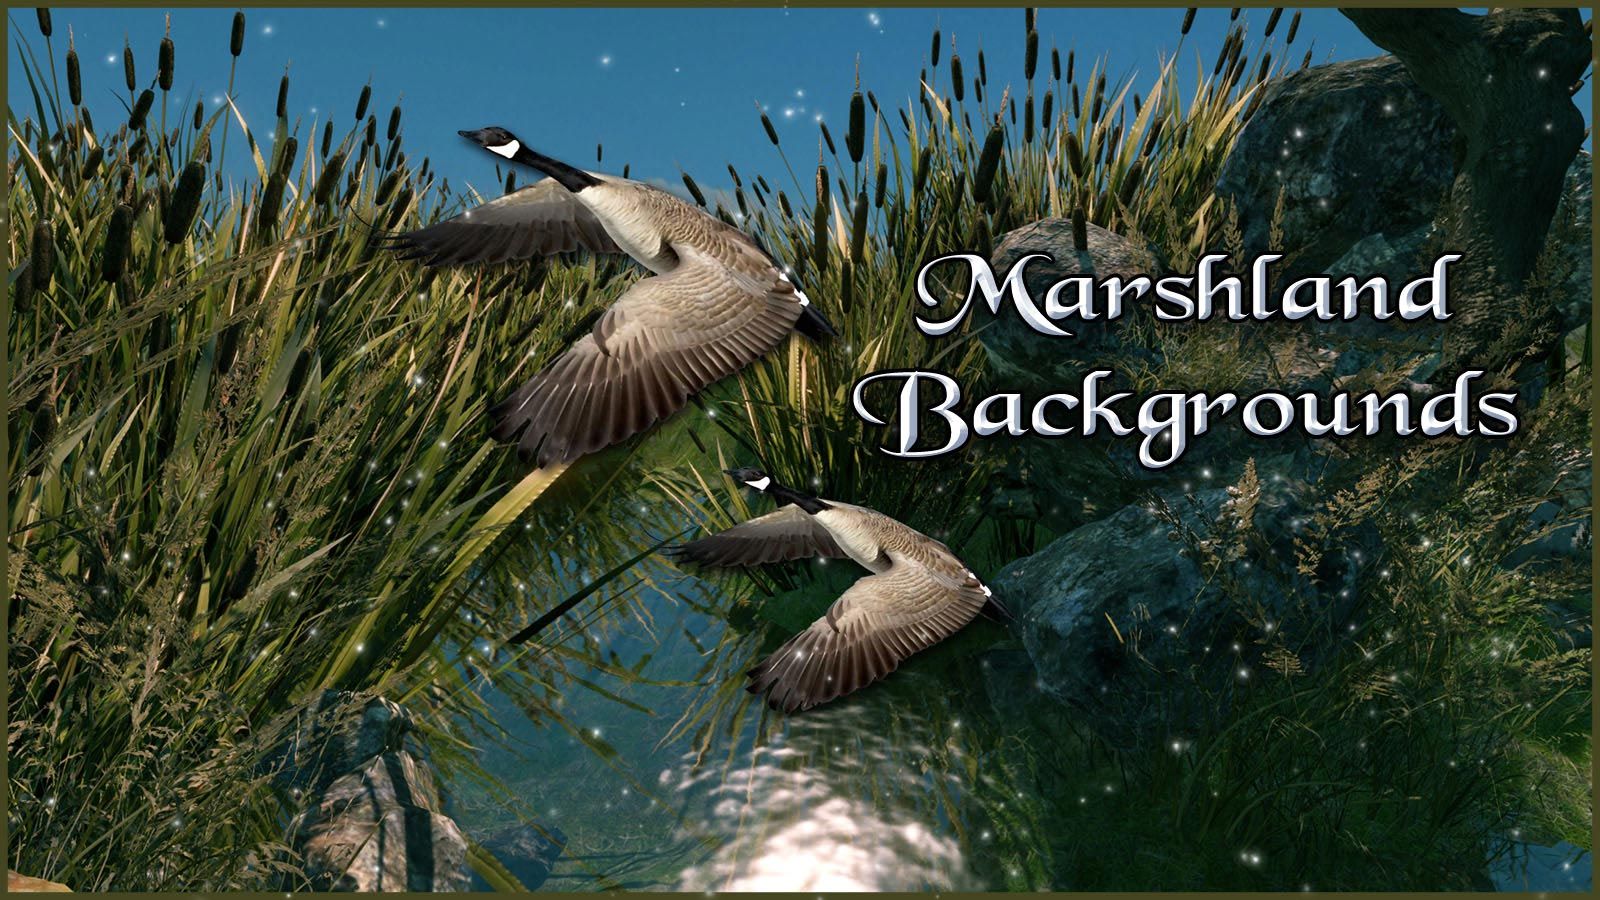 12020-marshland-backgrounds-main.jpg